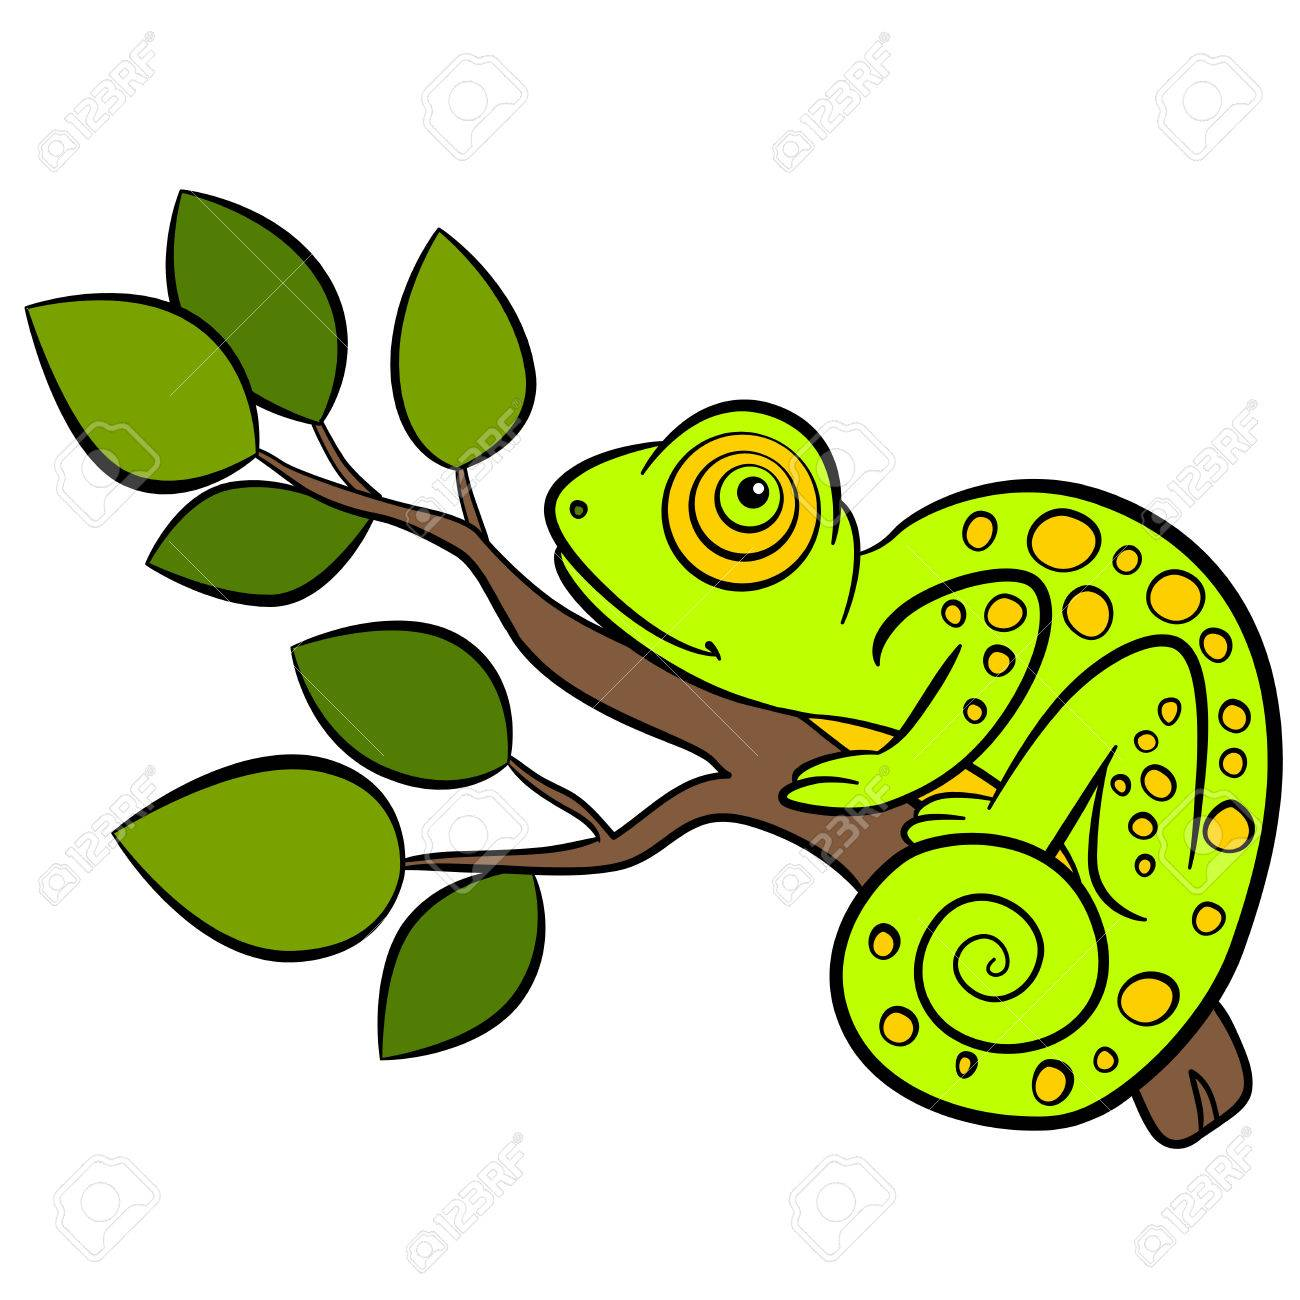 cartoon animals for kids little cute green chameleon sits on